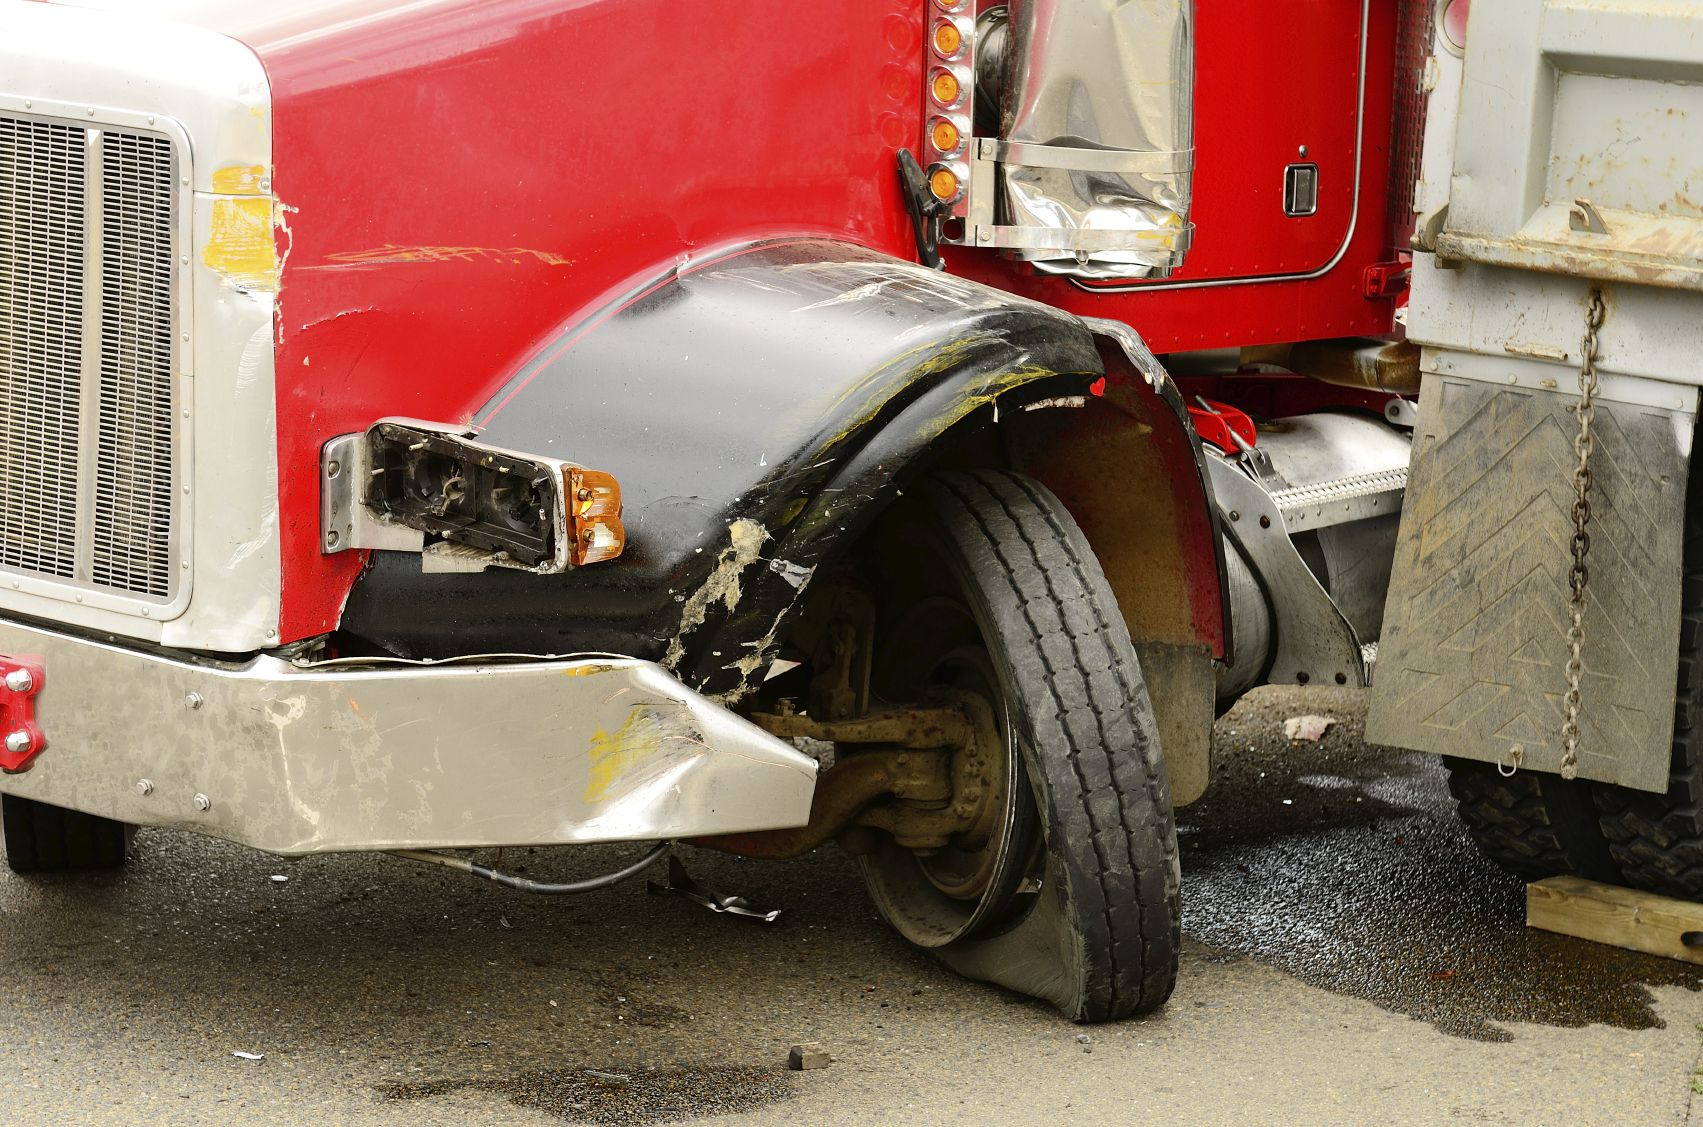 Evidence in Truck Accidents